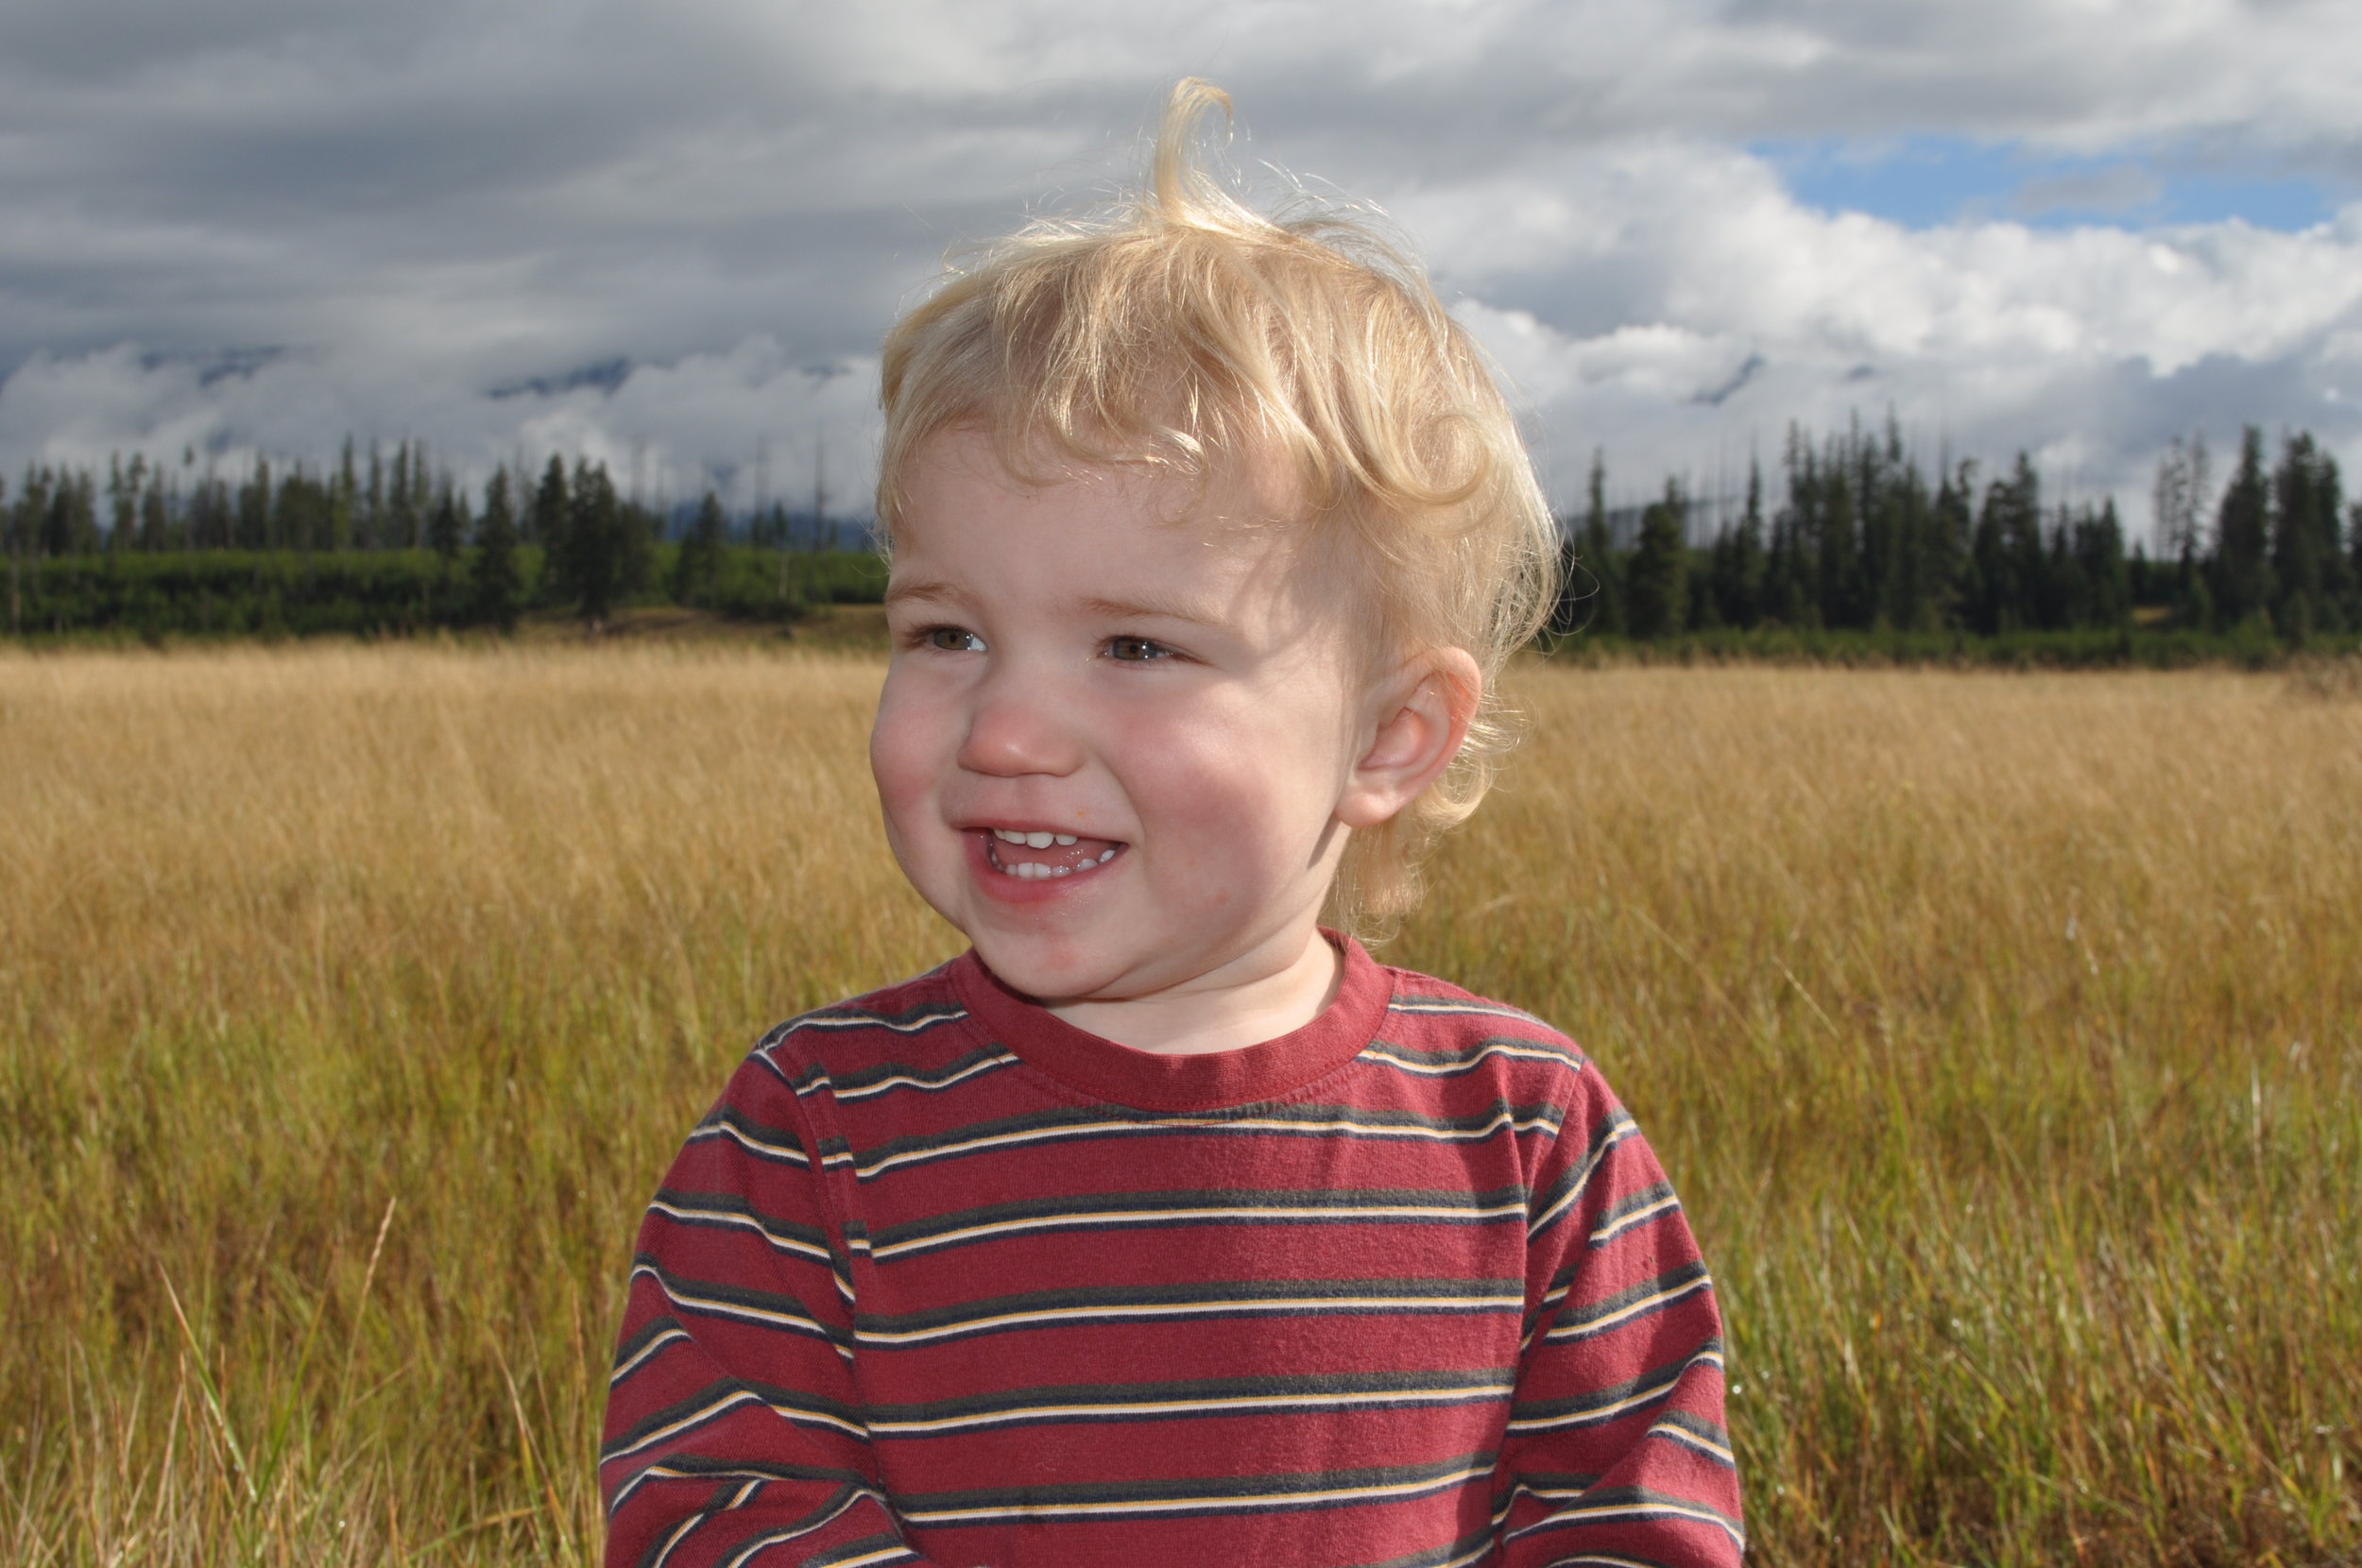 Seamus in August, 2010 on a family vacation in Montana